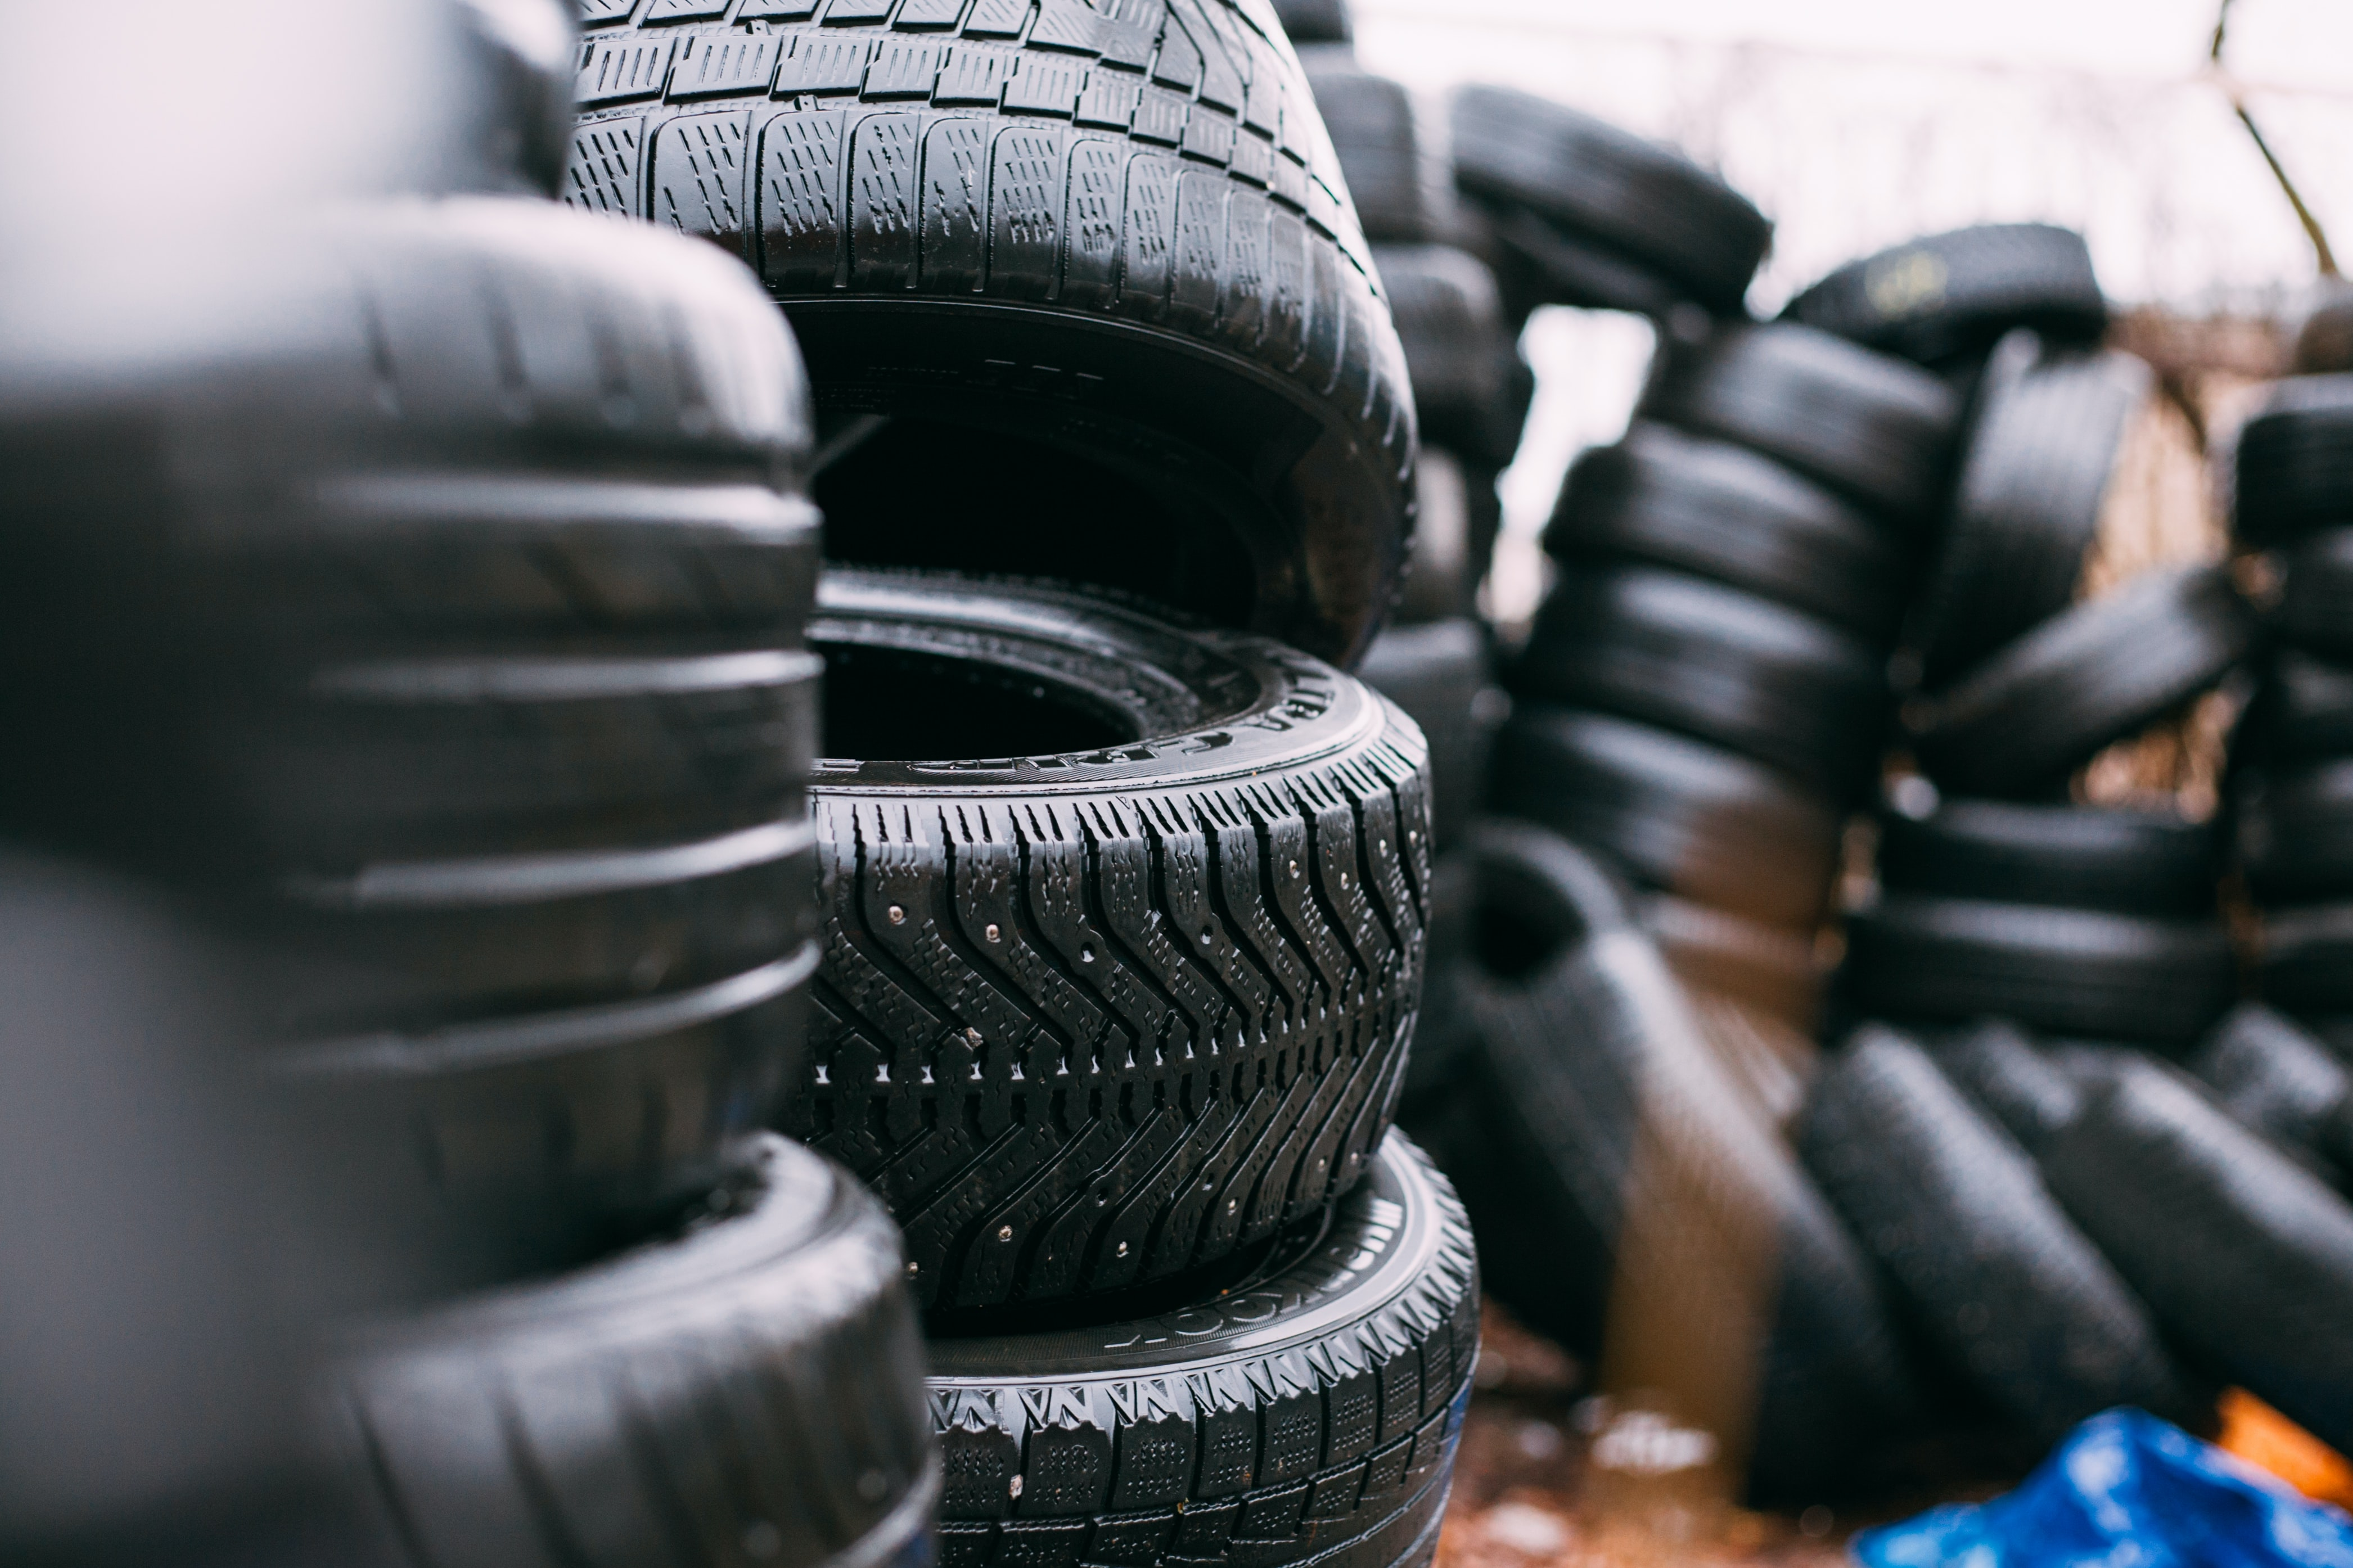 An image of tyres